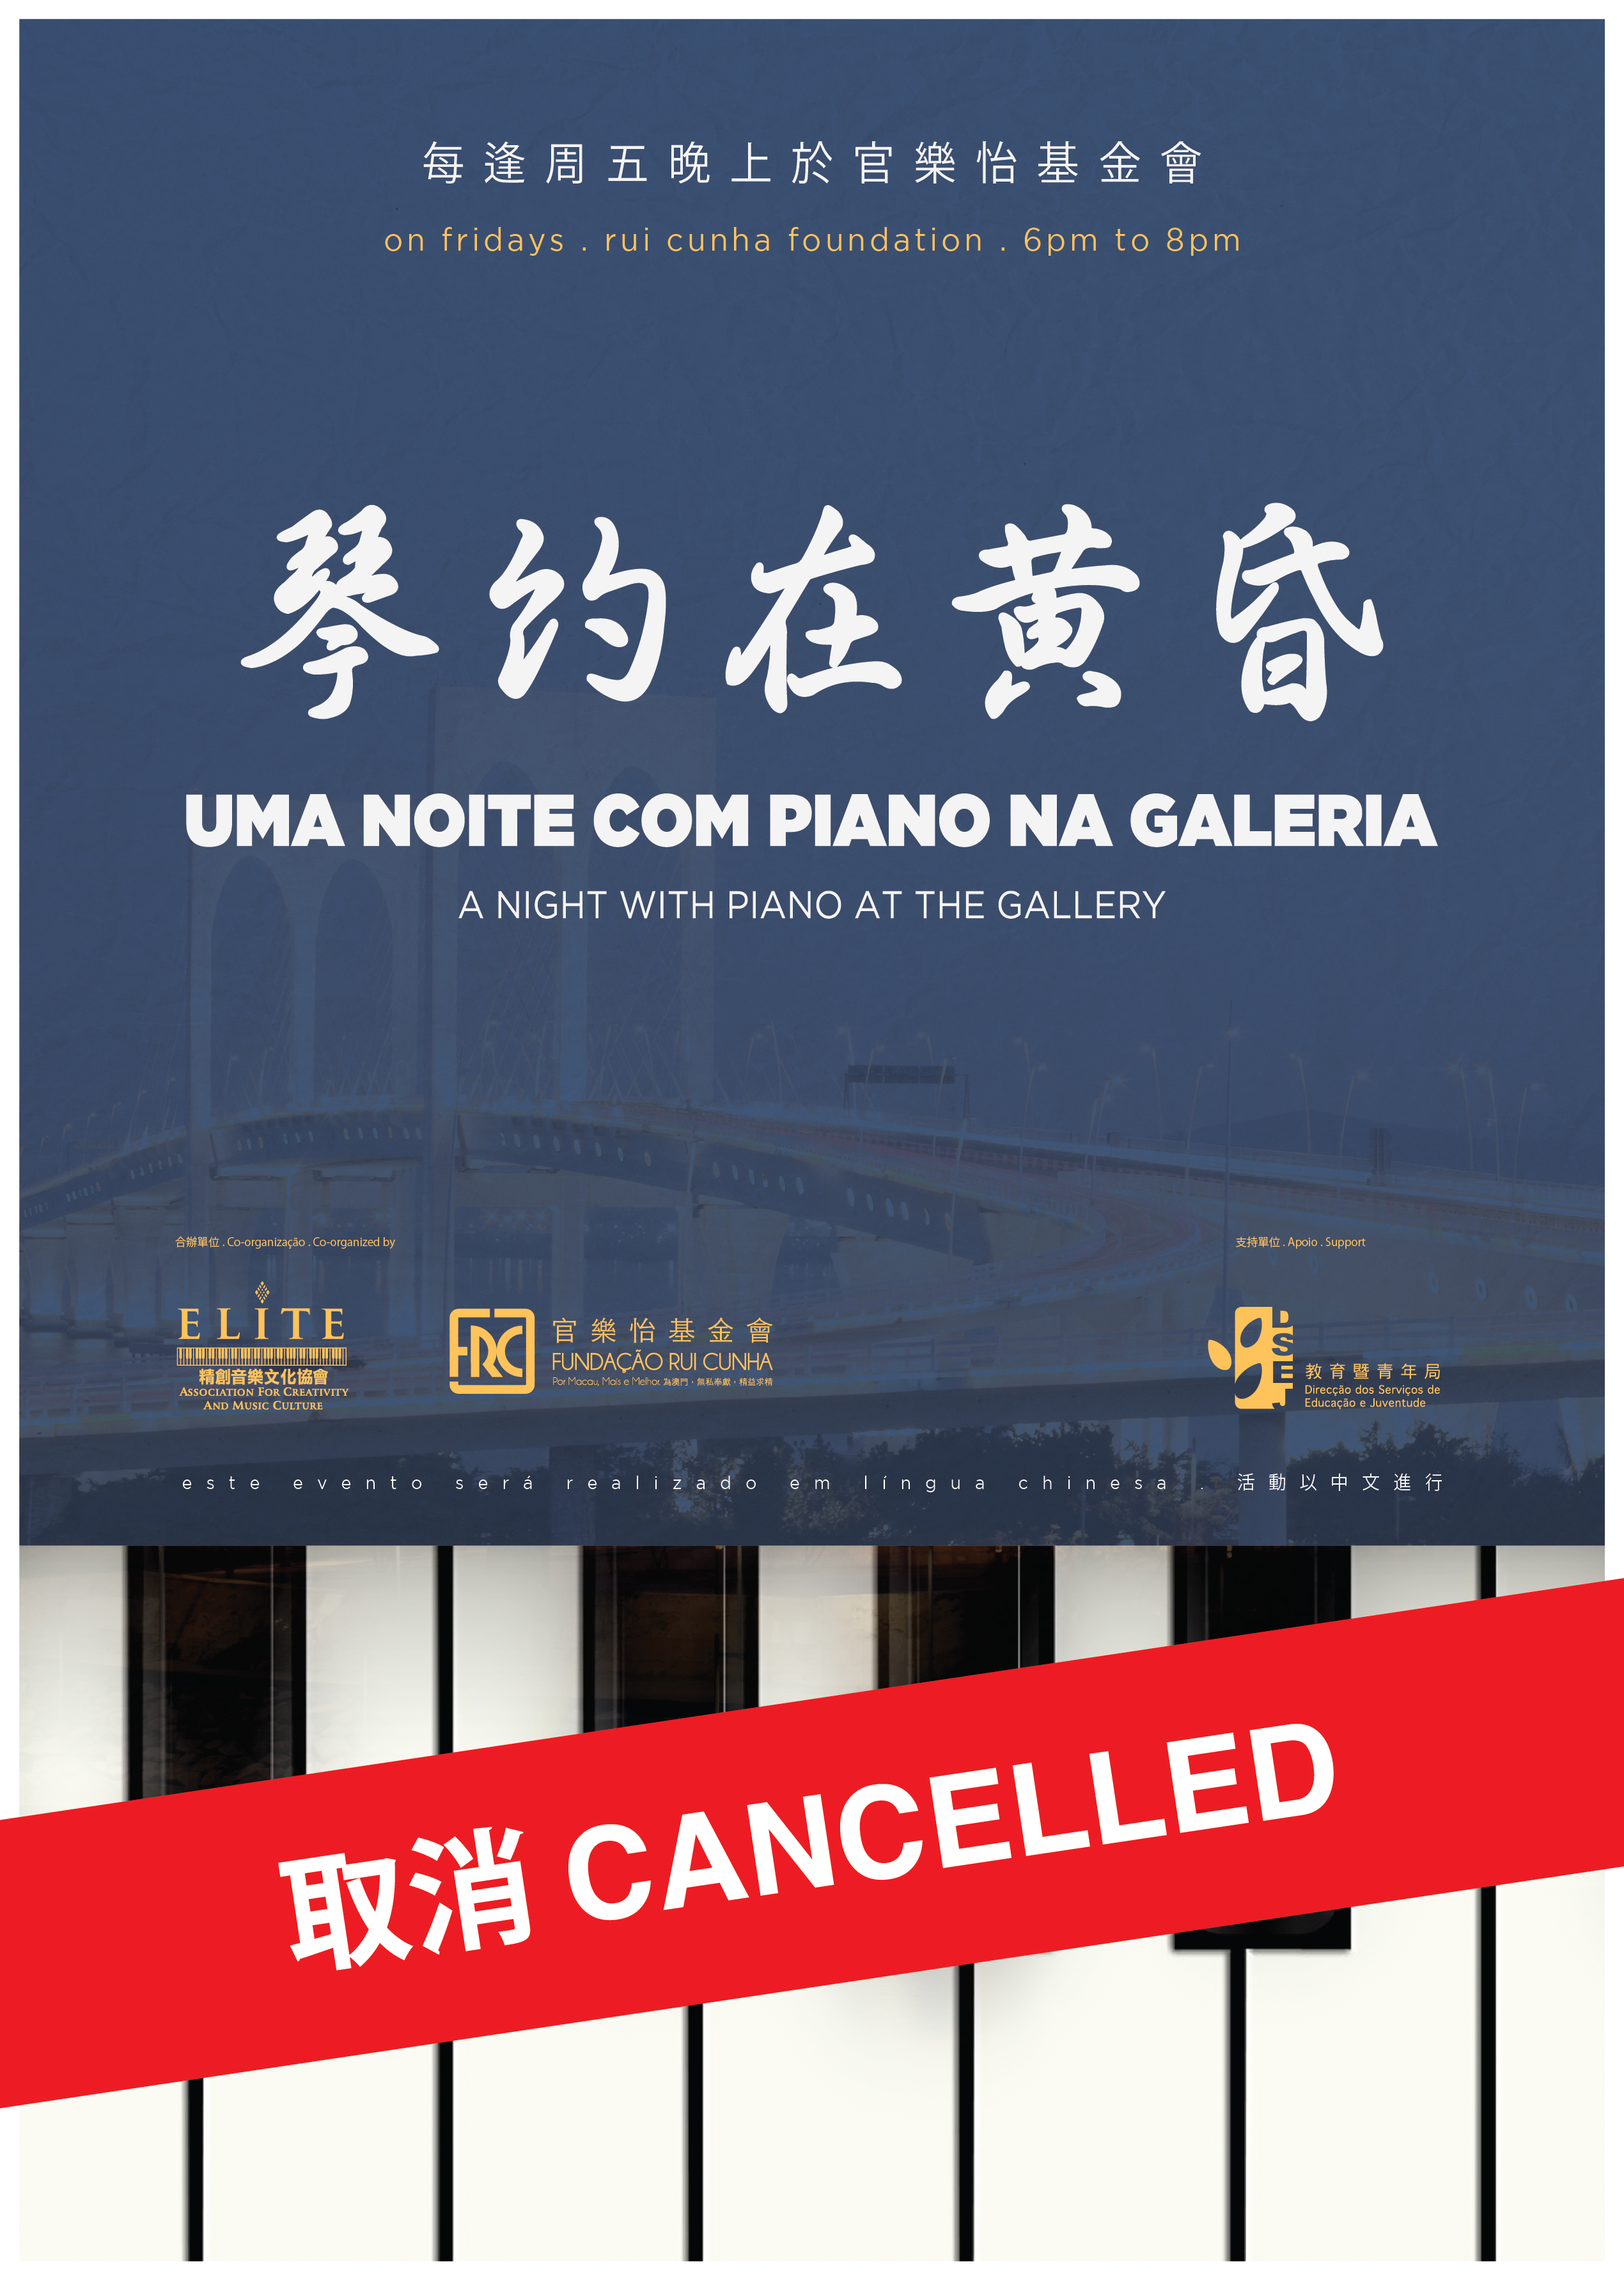 CANCELLED-01-01